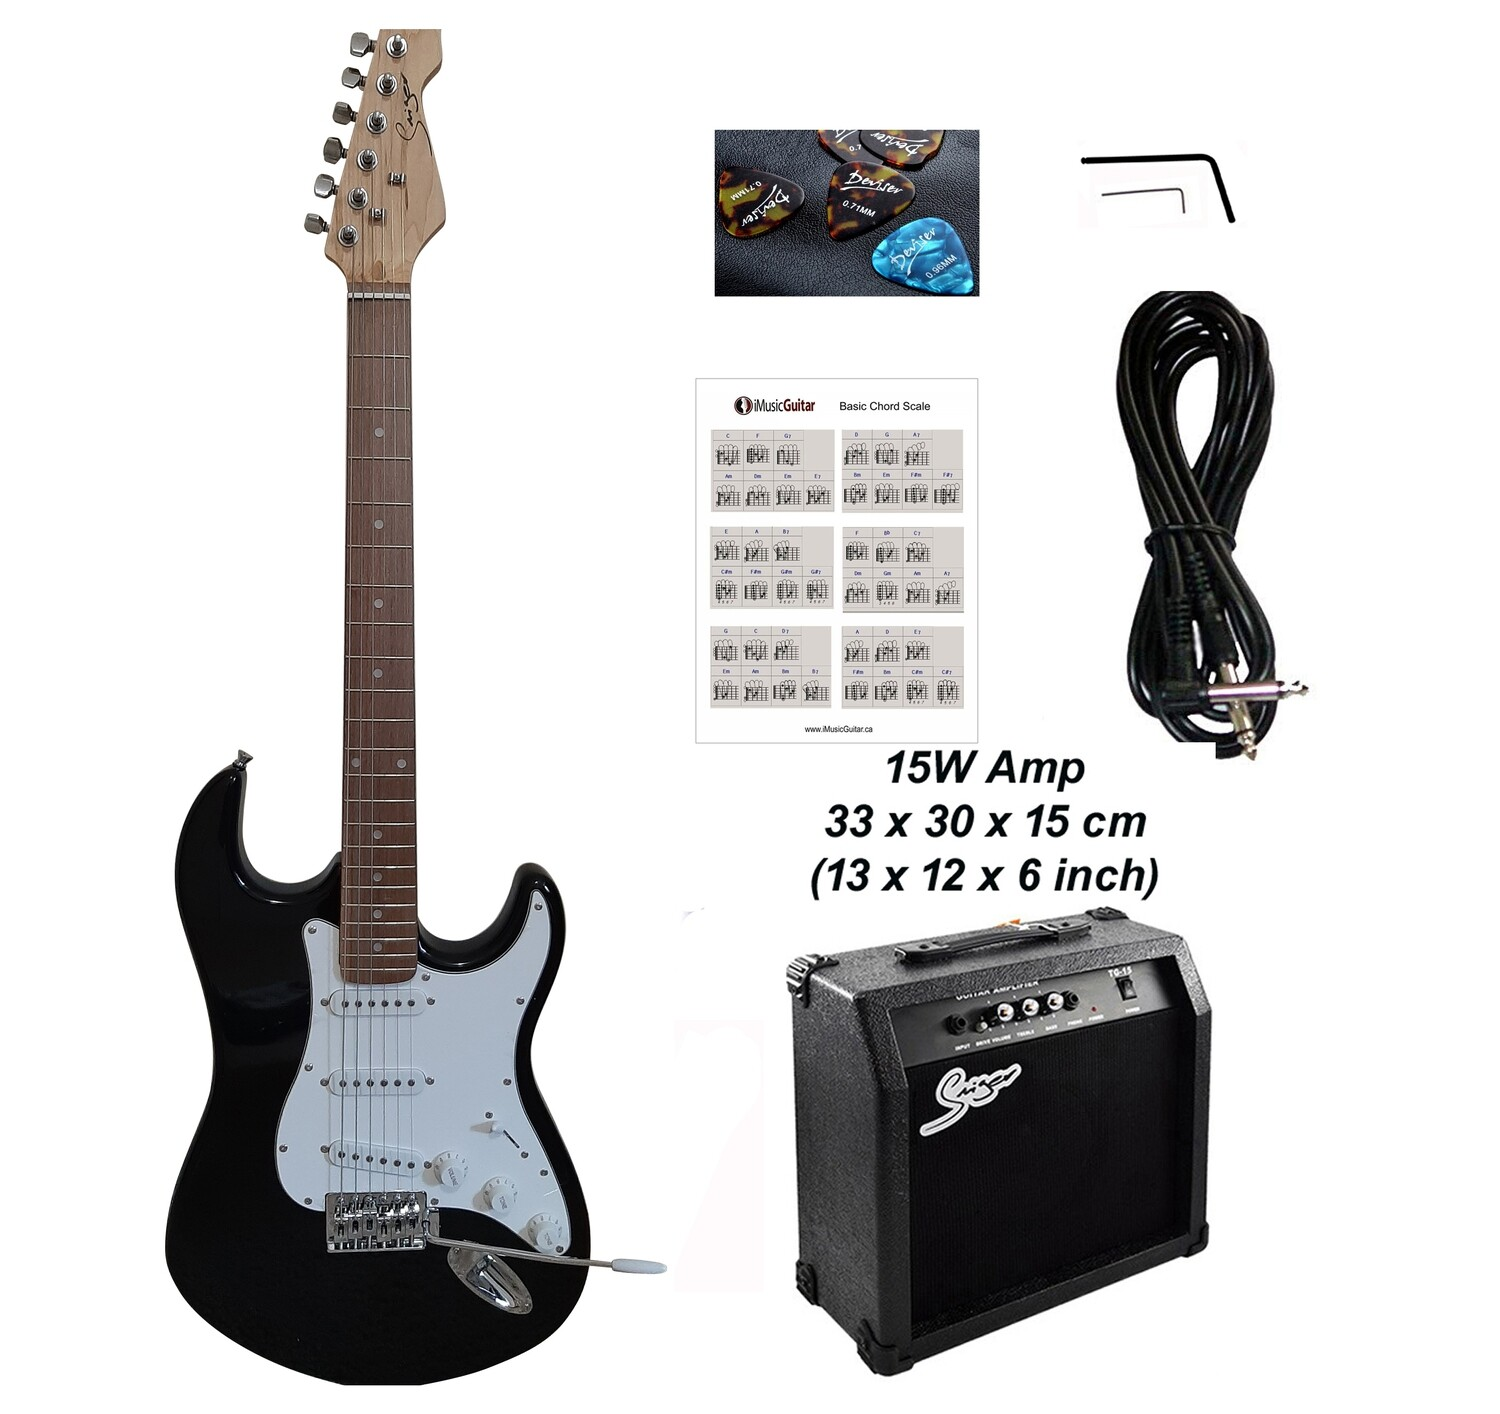 Electric Guitar 15W amp Package for beginners iMEG289AP